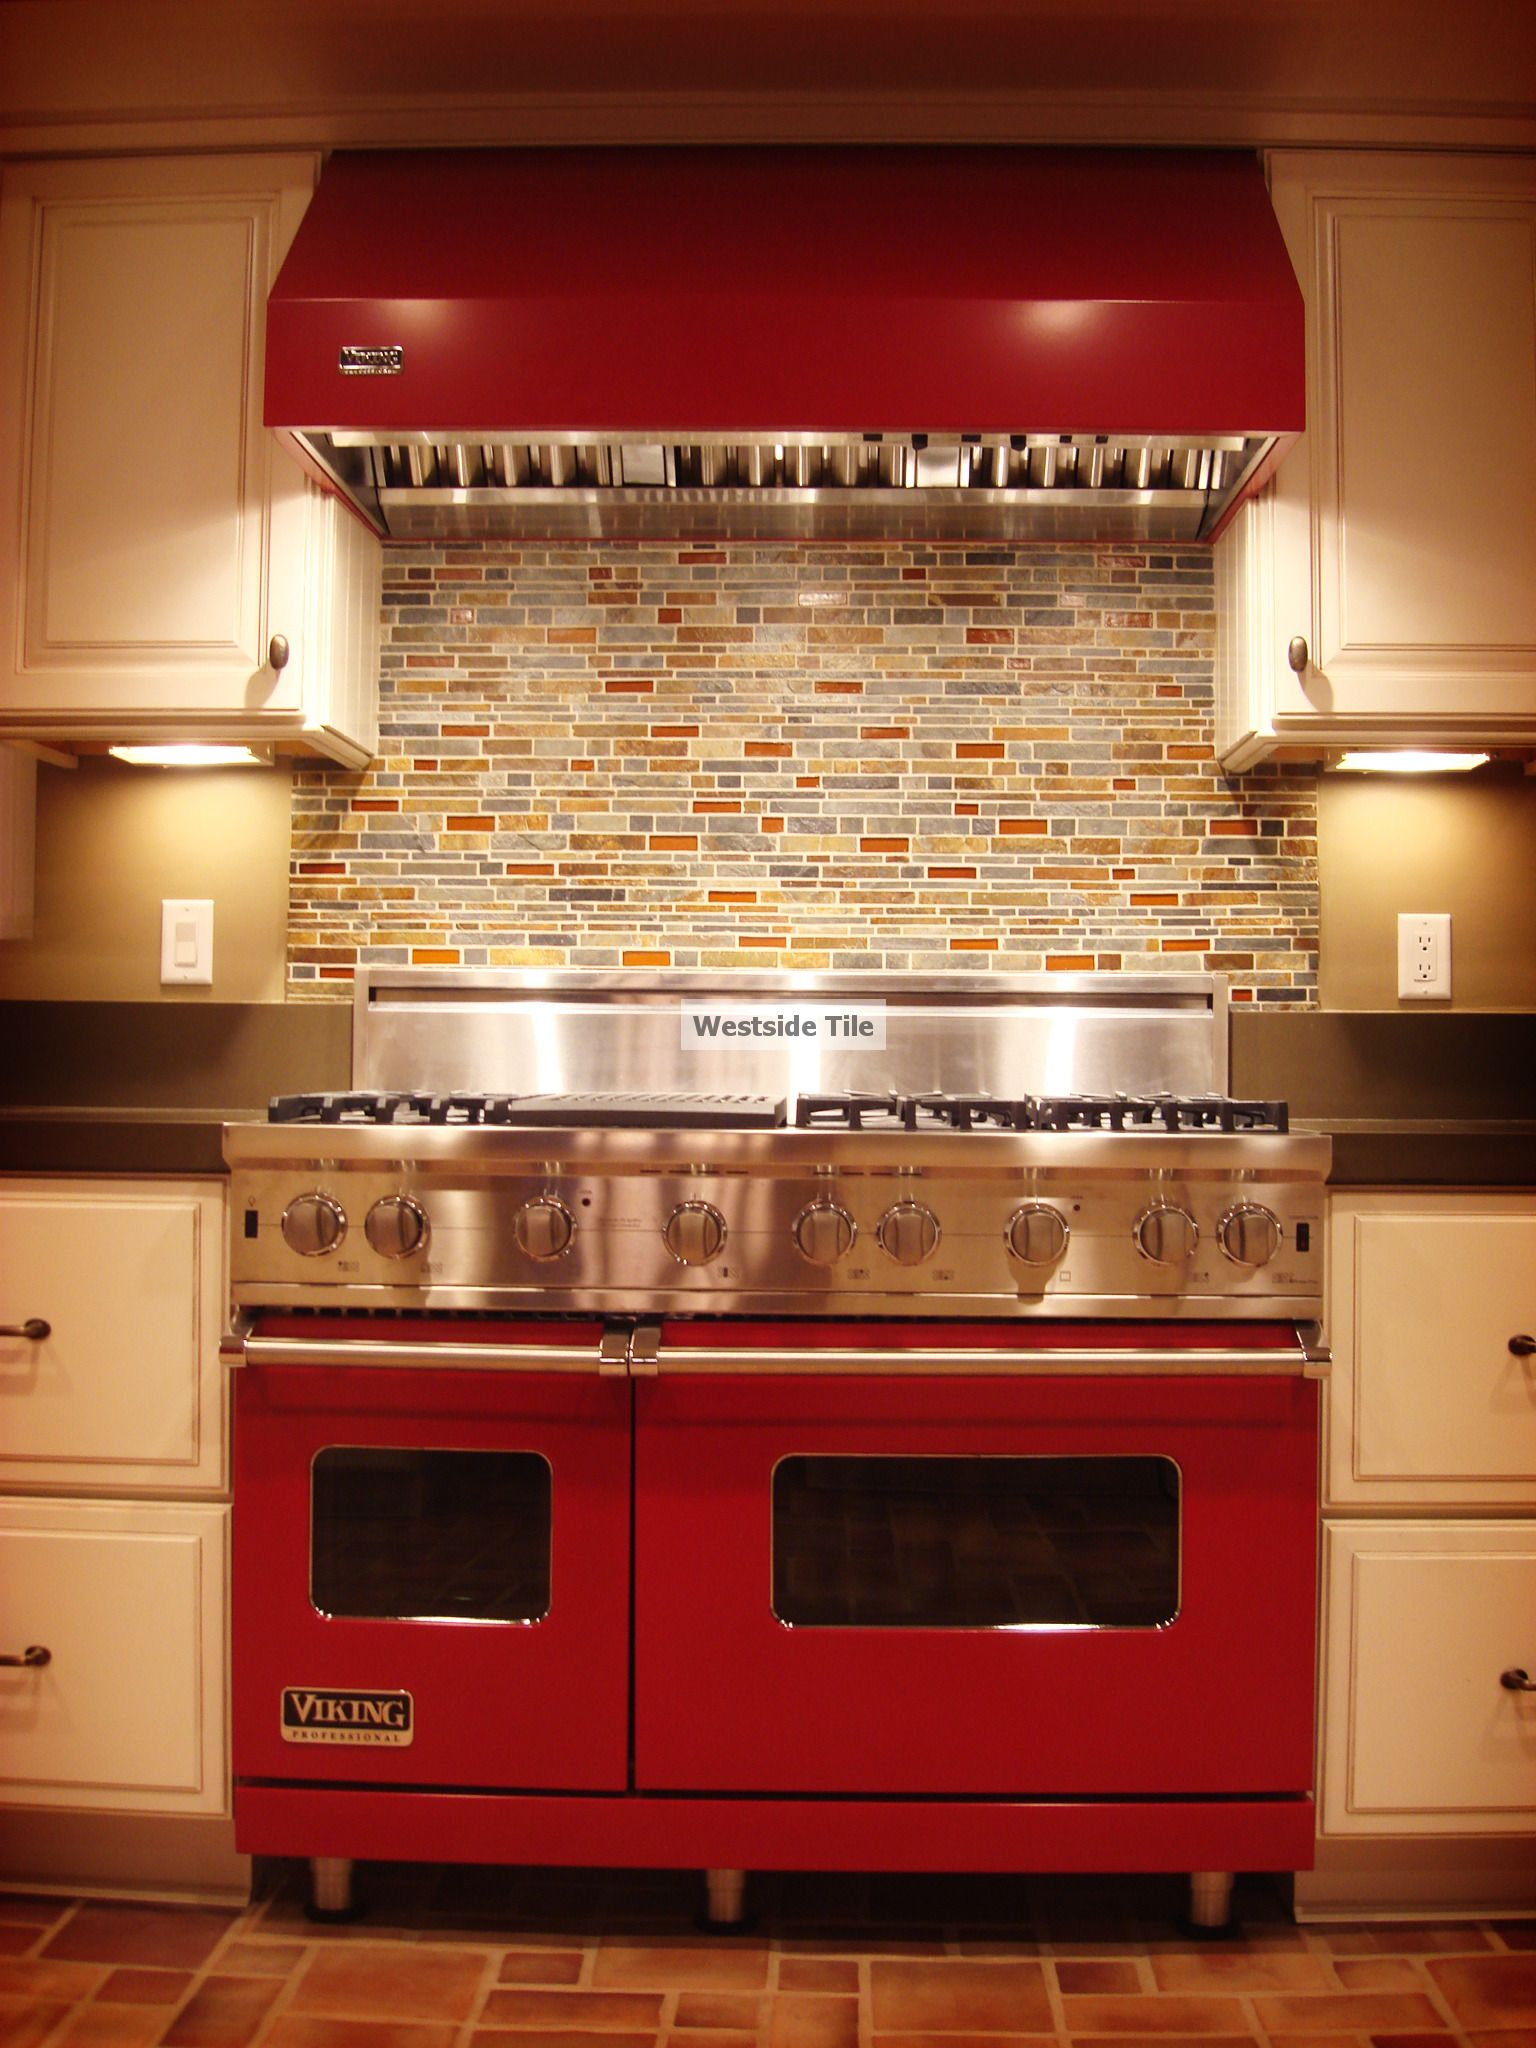 Black And White Kitchen Ideas With Red Tile Kitchen Backsplash Red Tiles For Kitchen Backsplash